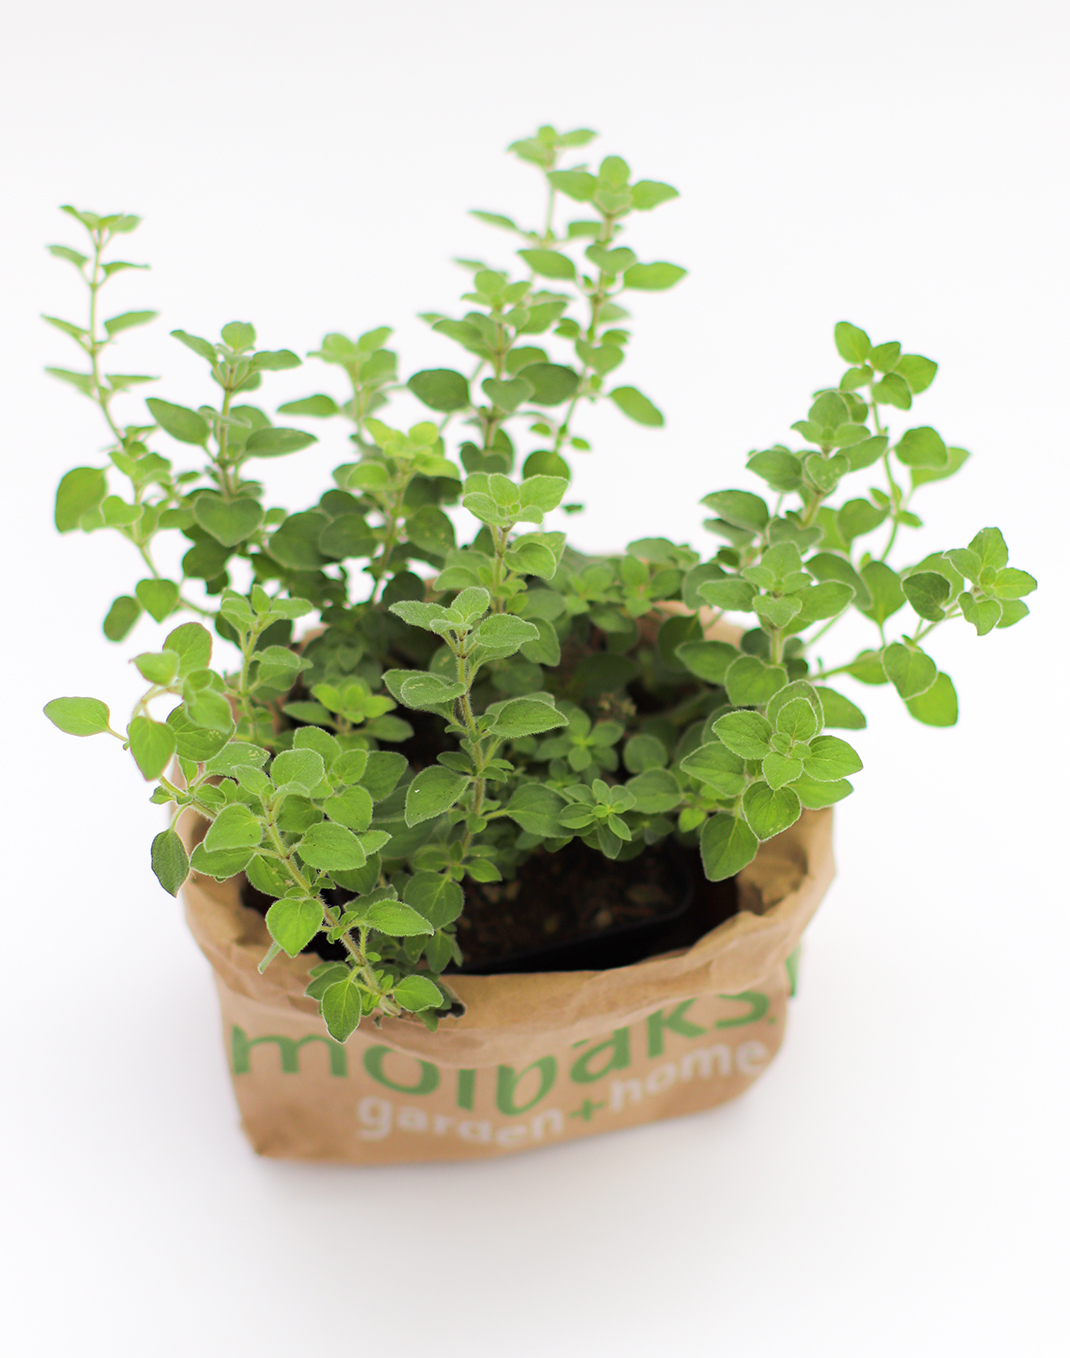 Origanum vulgare Hot n' Spicy Oregano 4""